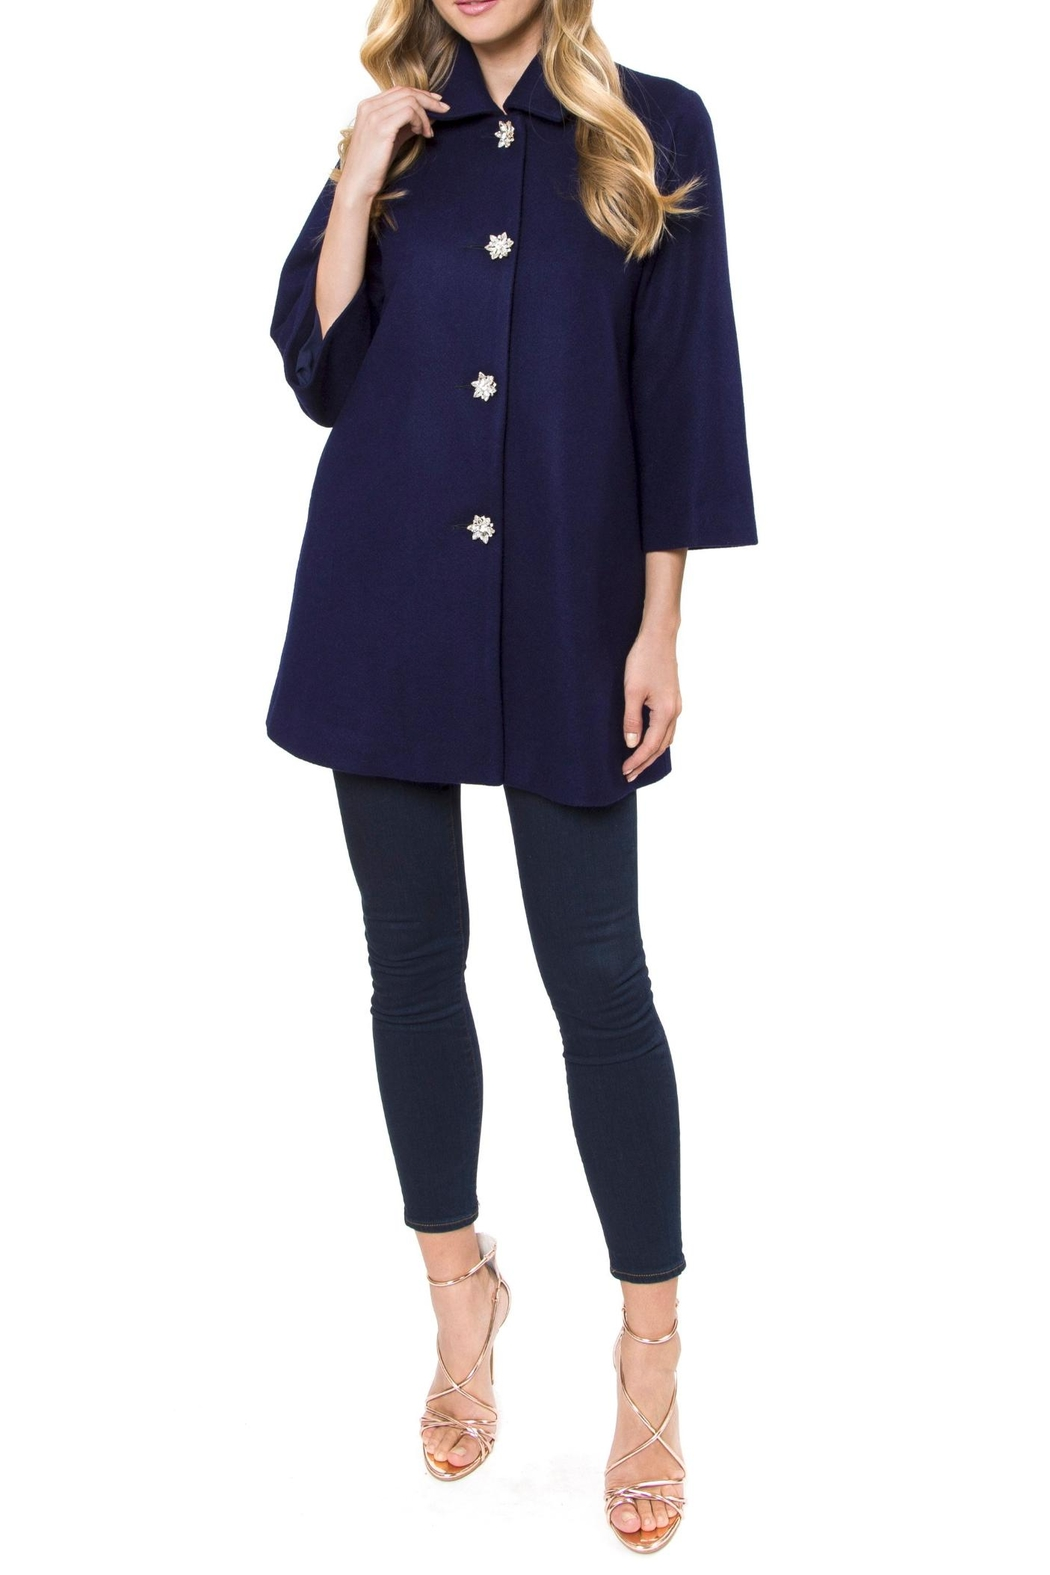 Julie Brown NYC Millie Jacket Royal-Blue - Main Image